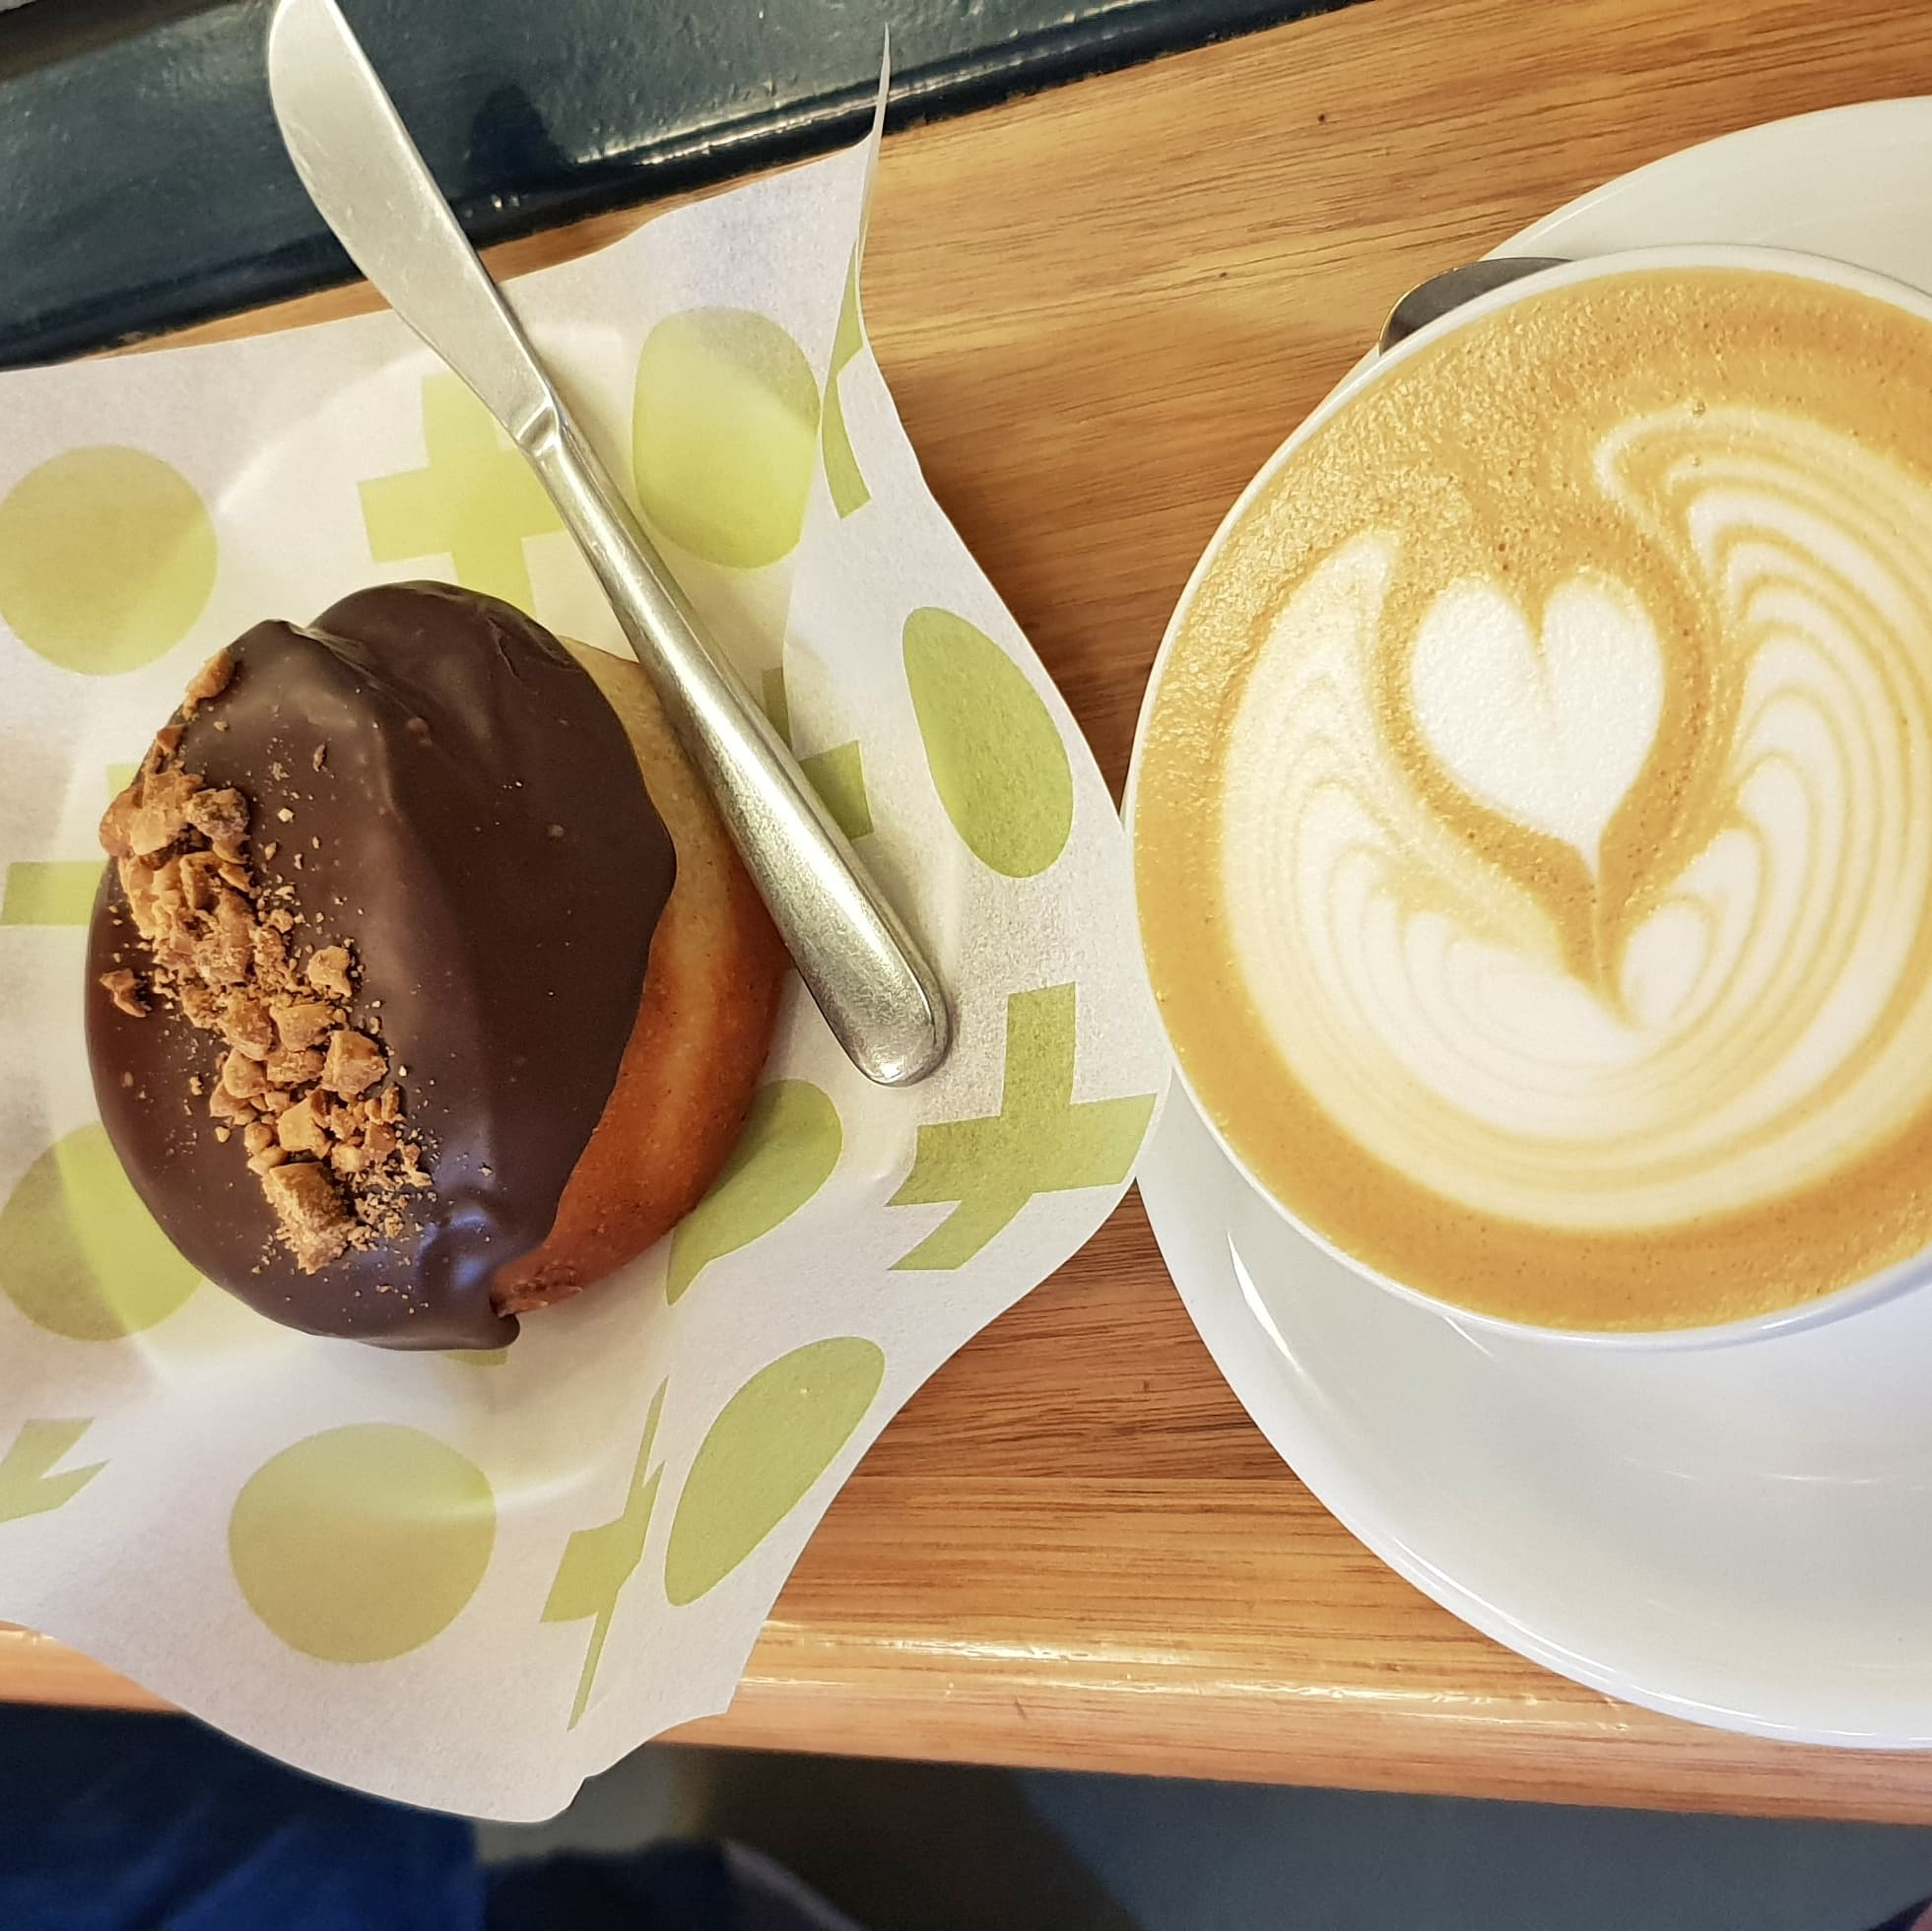 Shortstop coffee and donuts